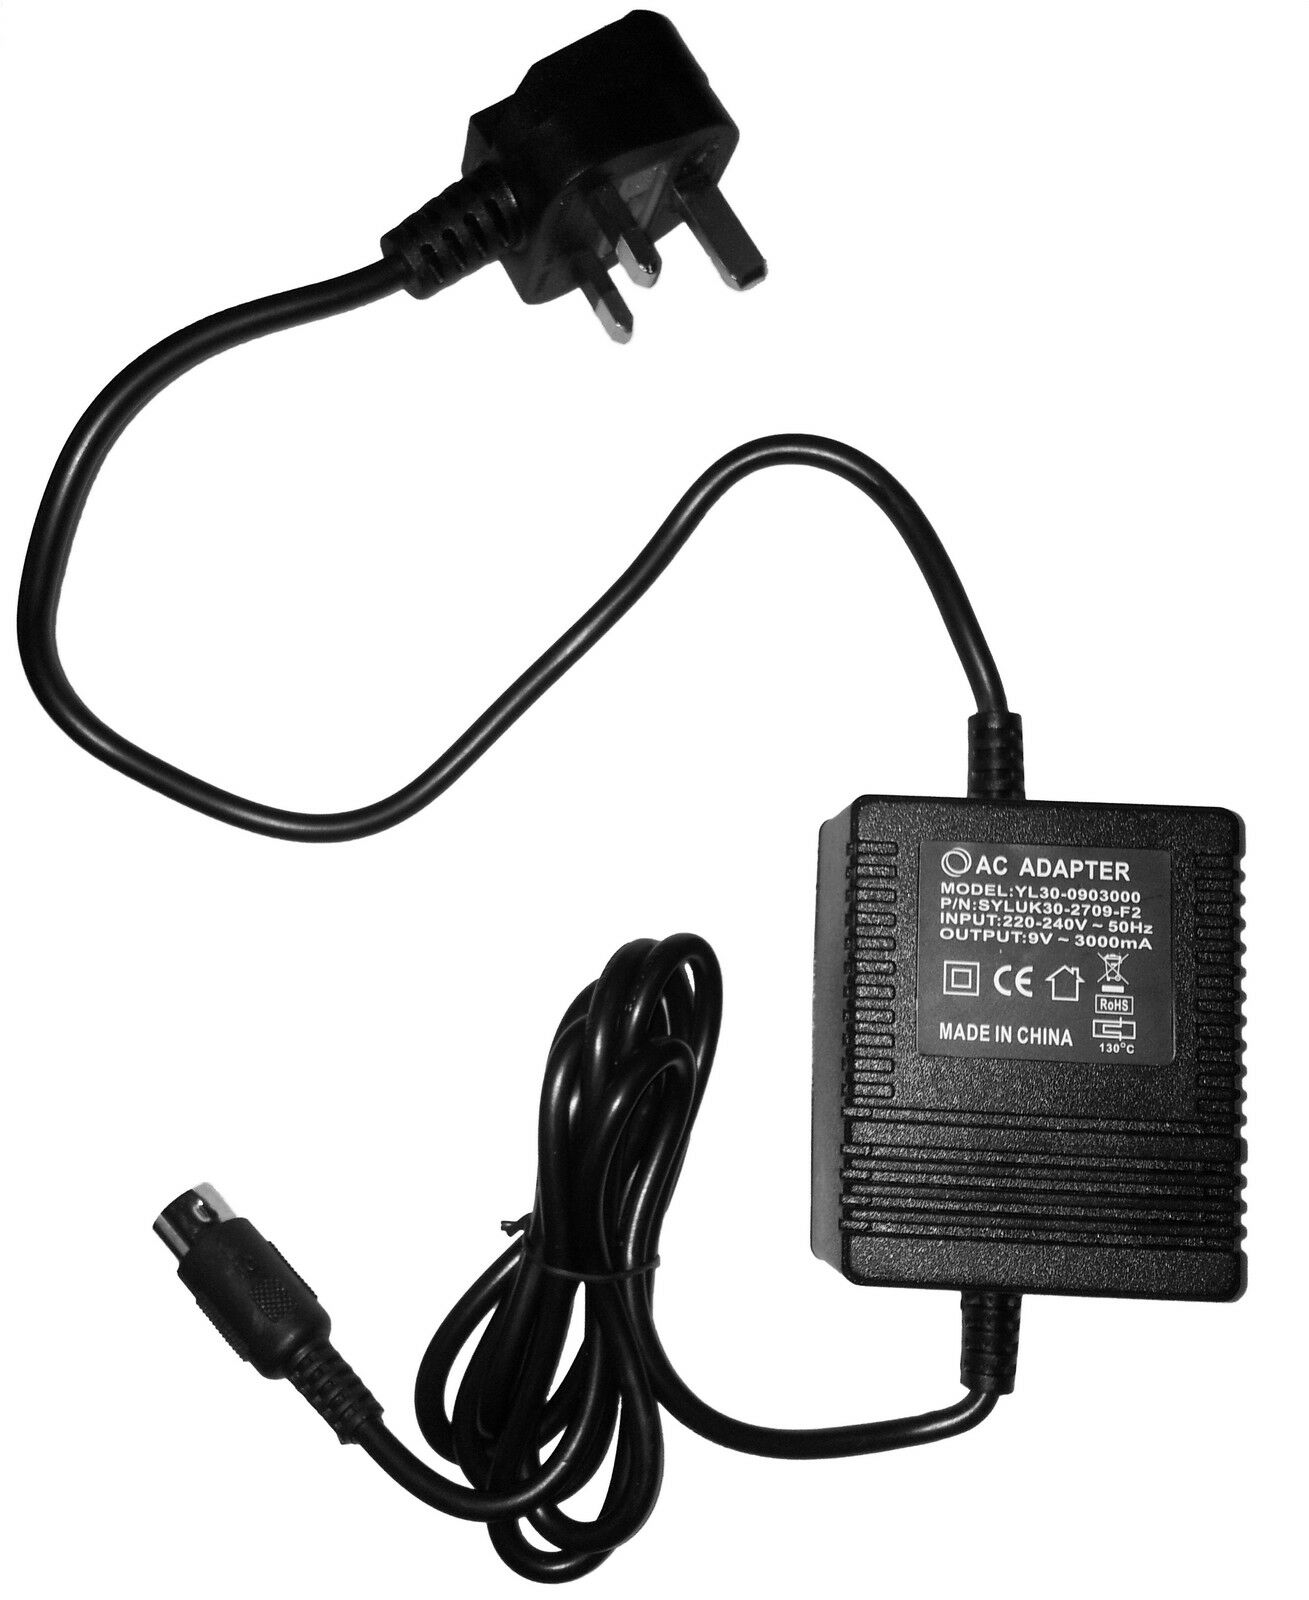 DIGITECH PS940 POWER SUPPLY REPLACEMENT ADAPTER 4 PIN DIN DIN DIN UK 9V 220V 230V 240V 1370b0